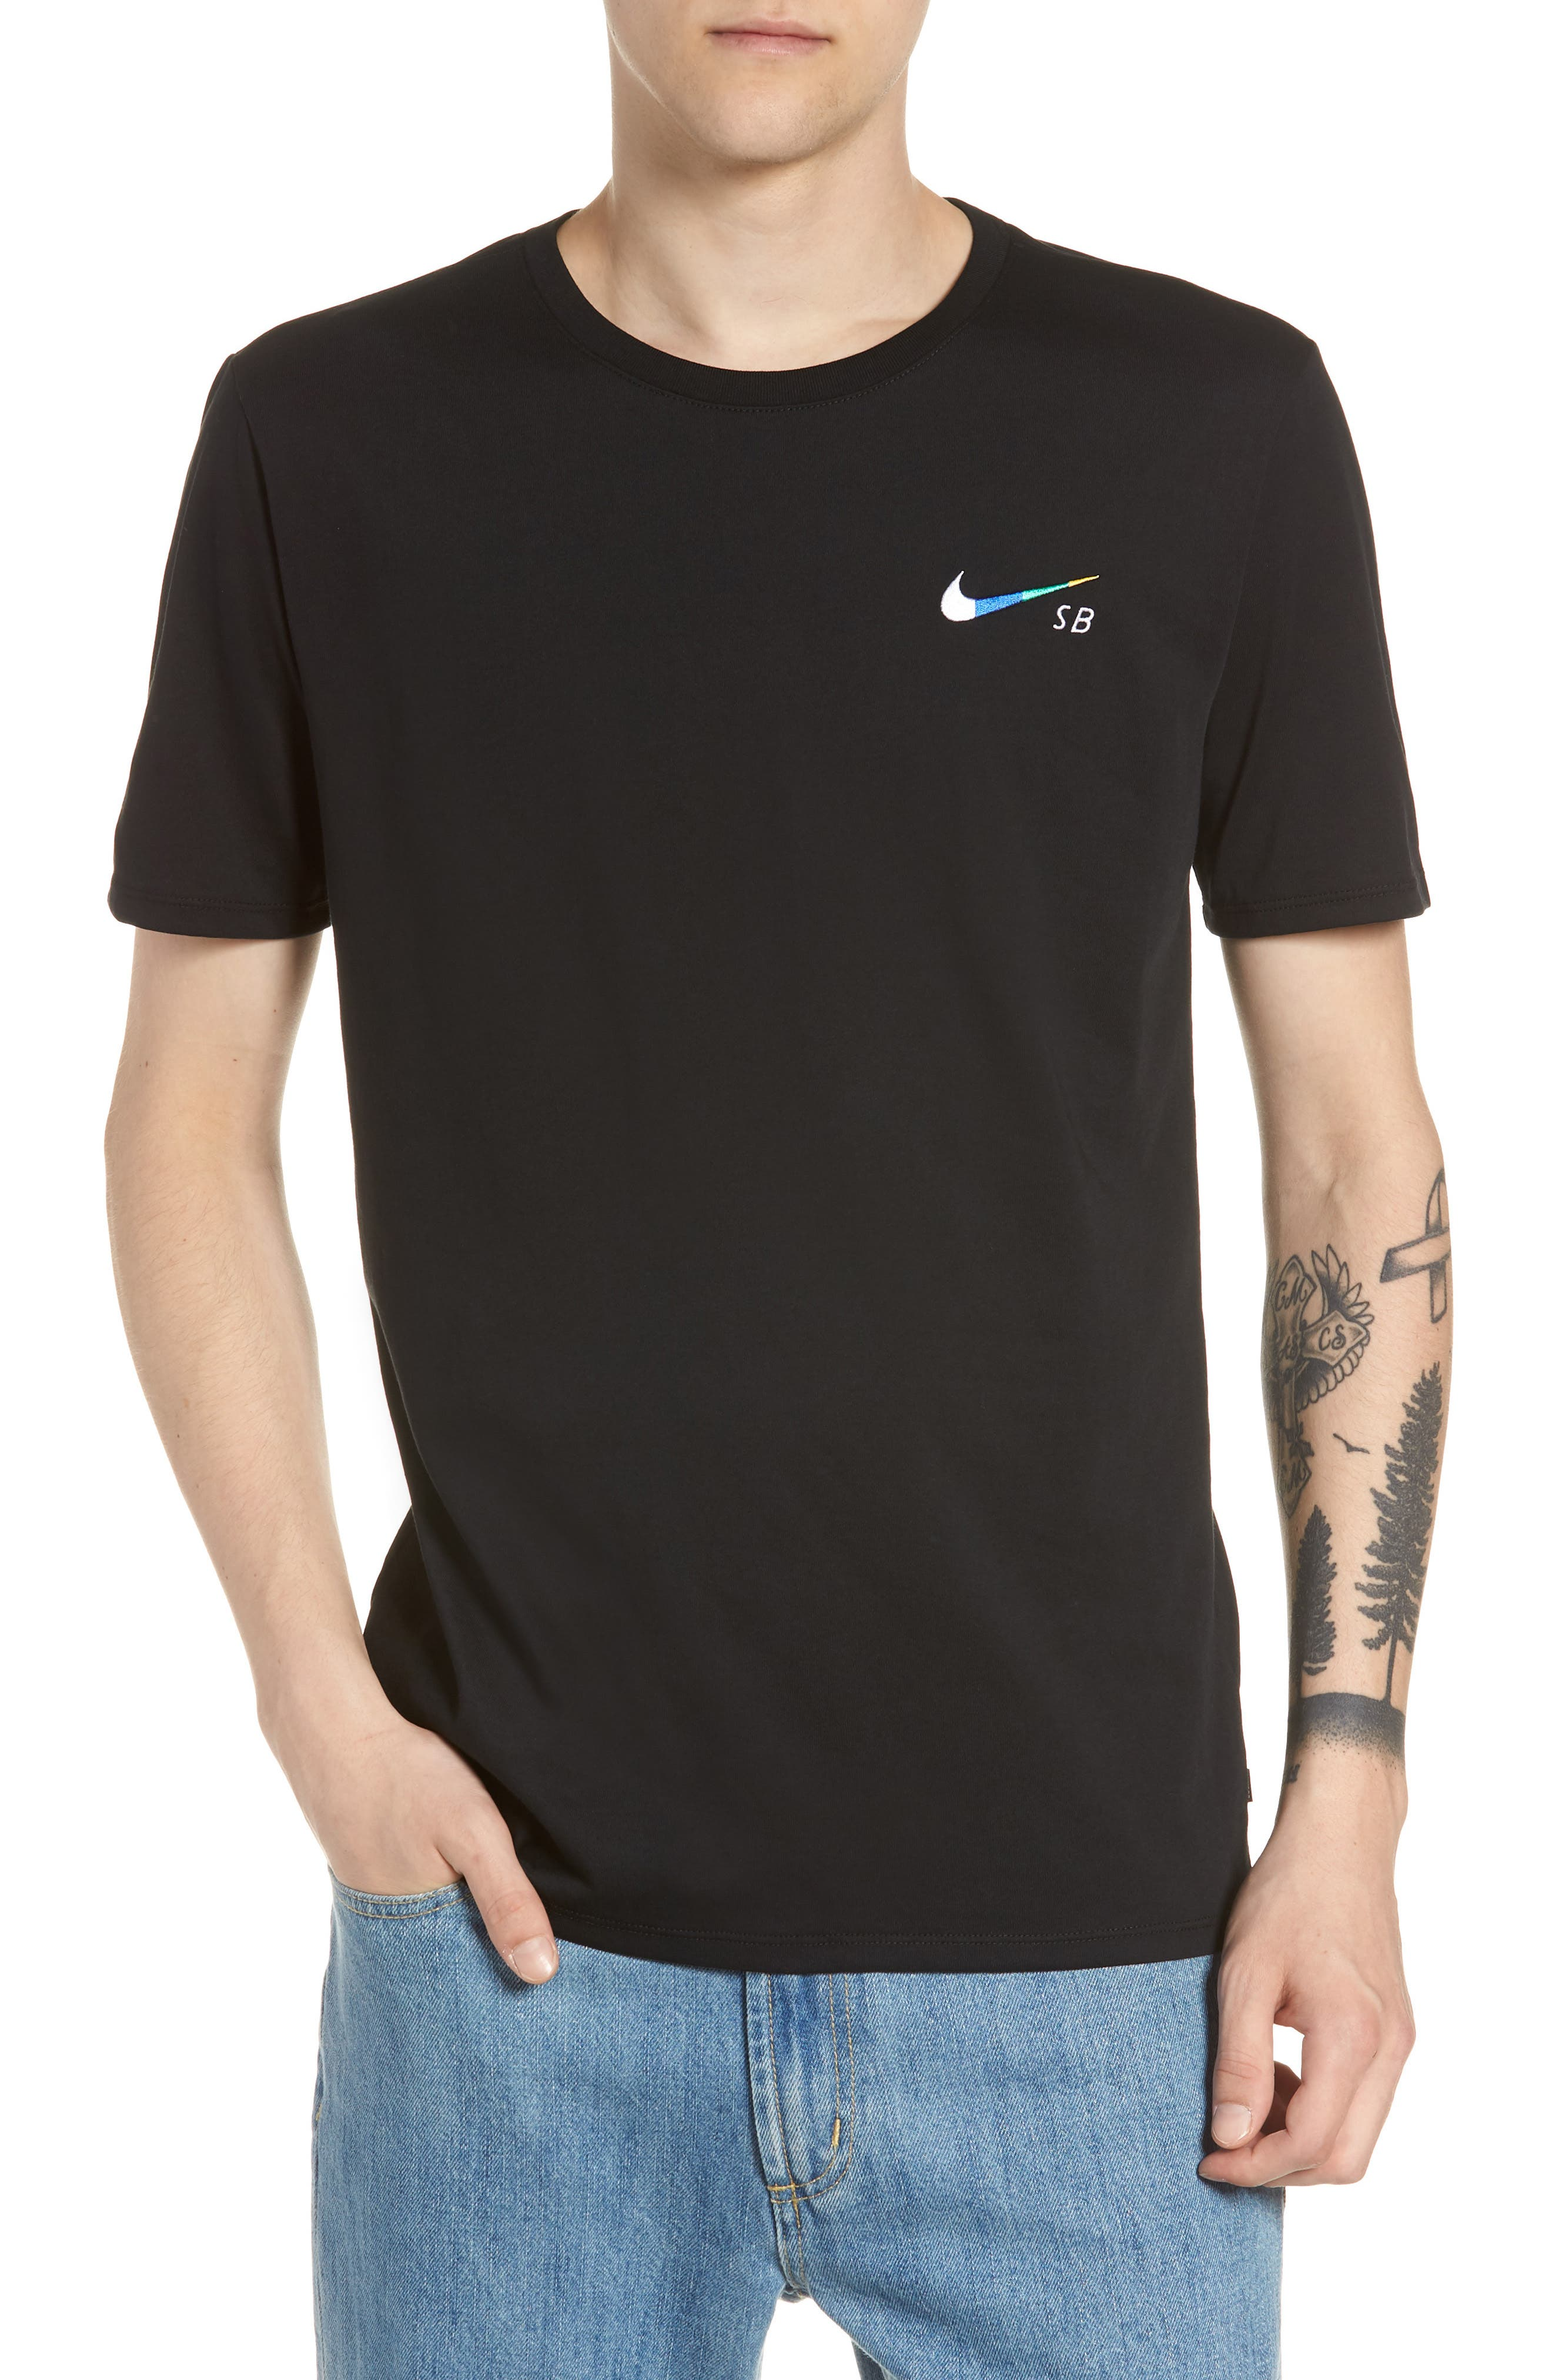 NIKE SB Dry DFC Global Graphic T-Shirt, Main, color, 010